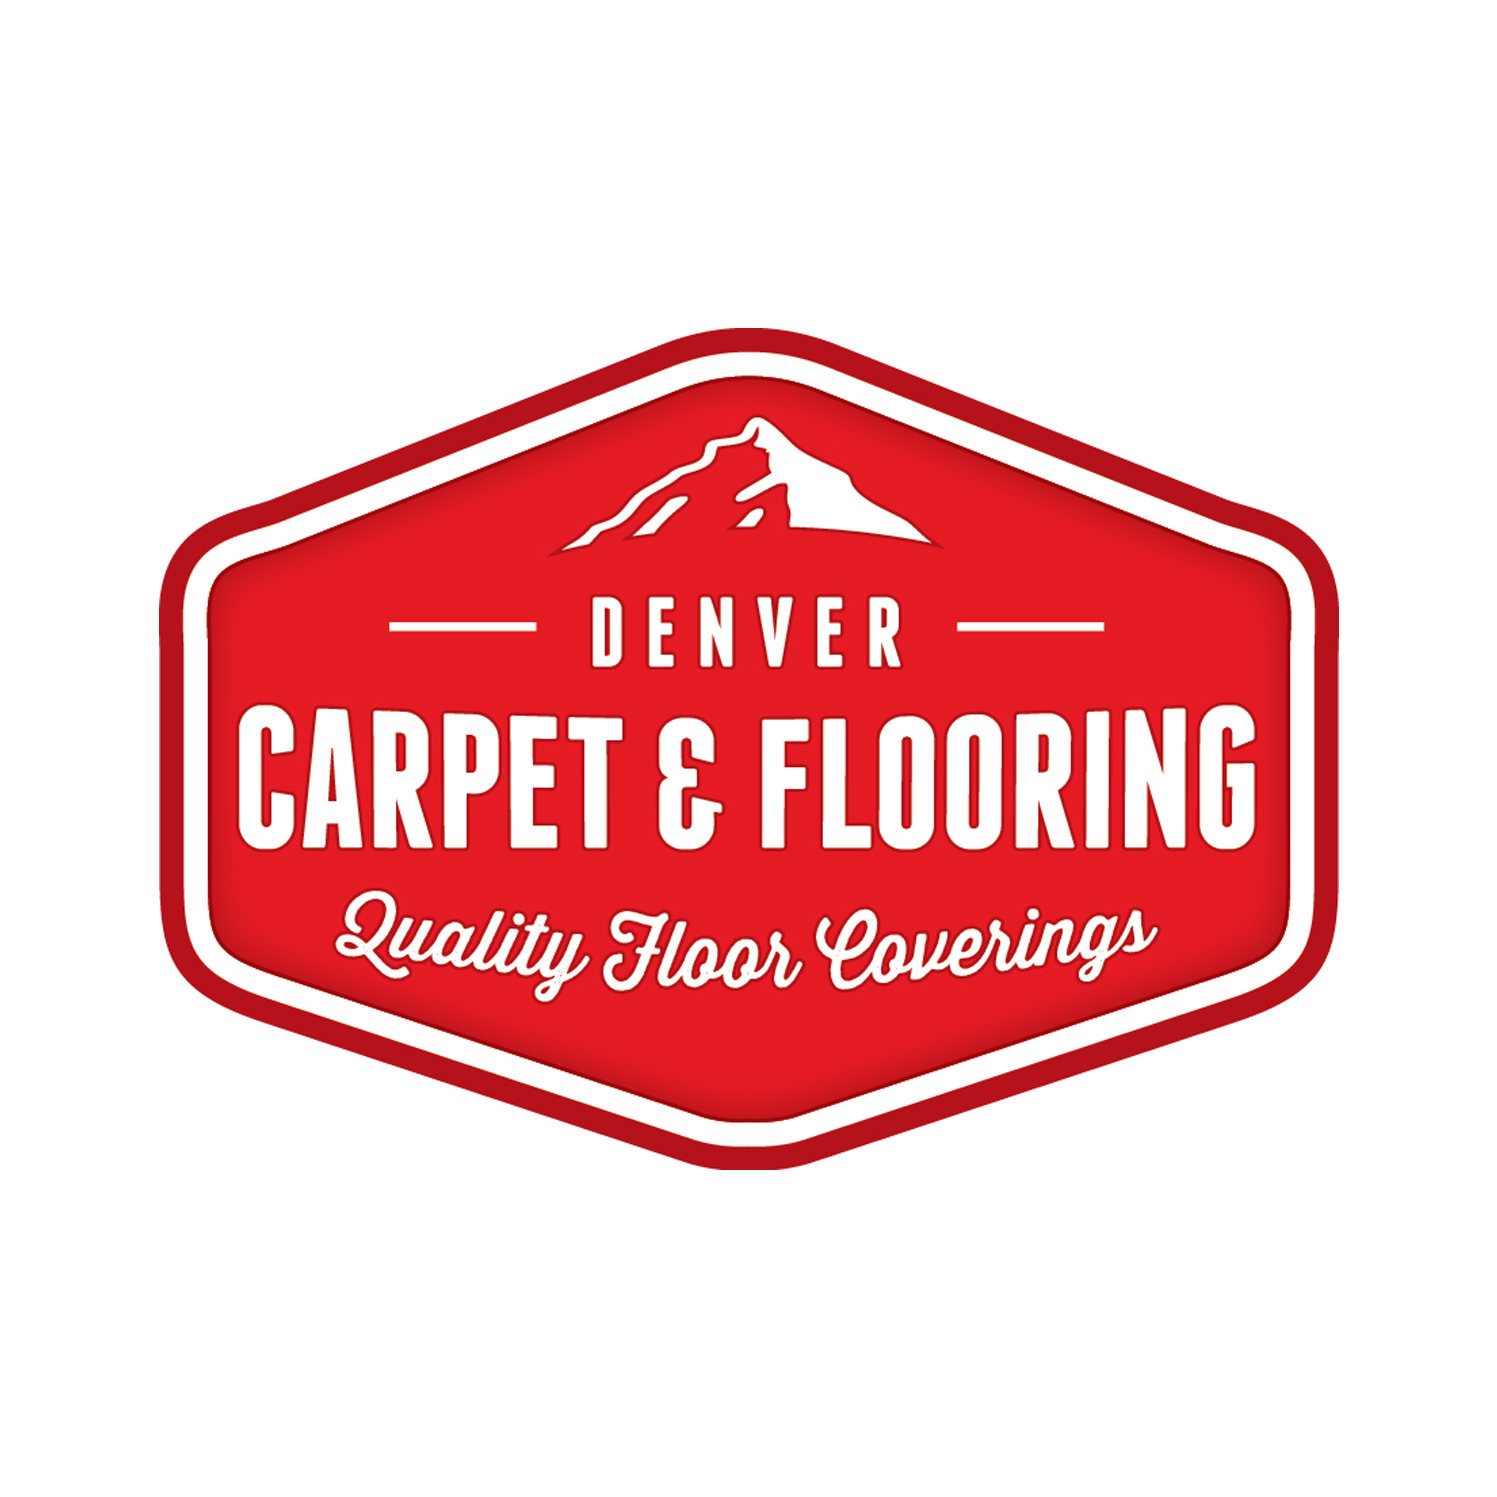 Denver Carpet and Flooring Logo Design